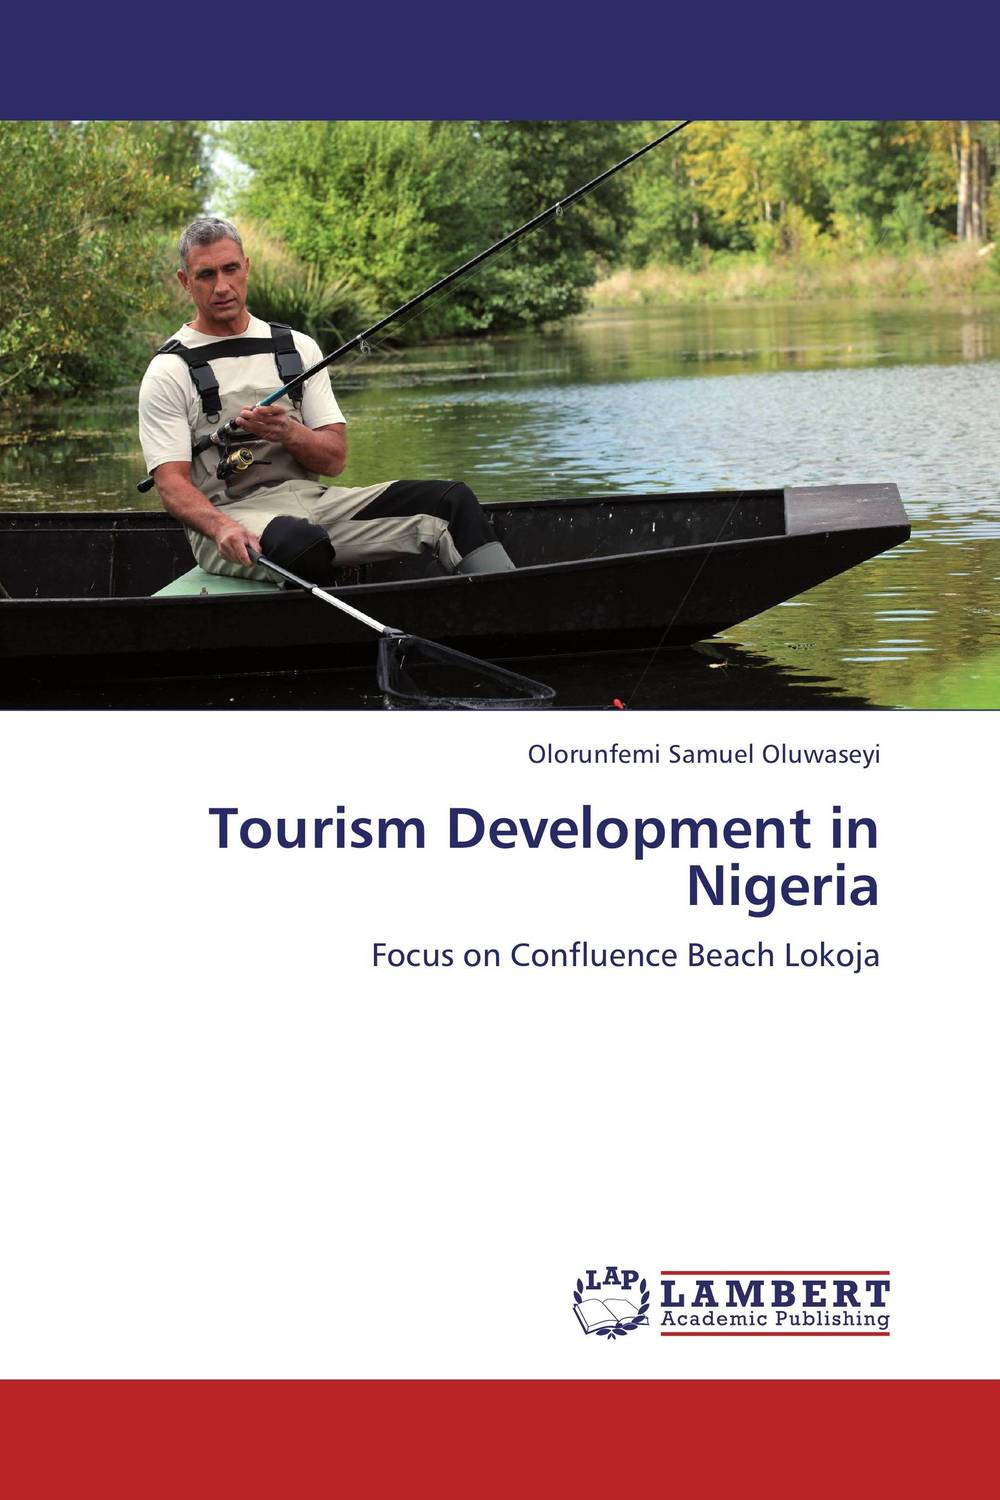 Tourism Development in Nigeria olorunfemi samuel oluwaseyi tourism development in nigeria